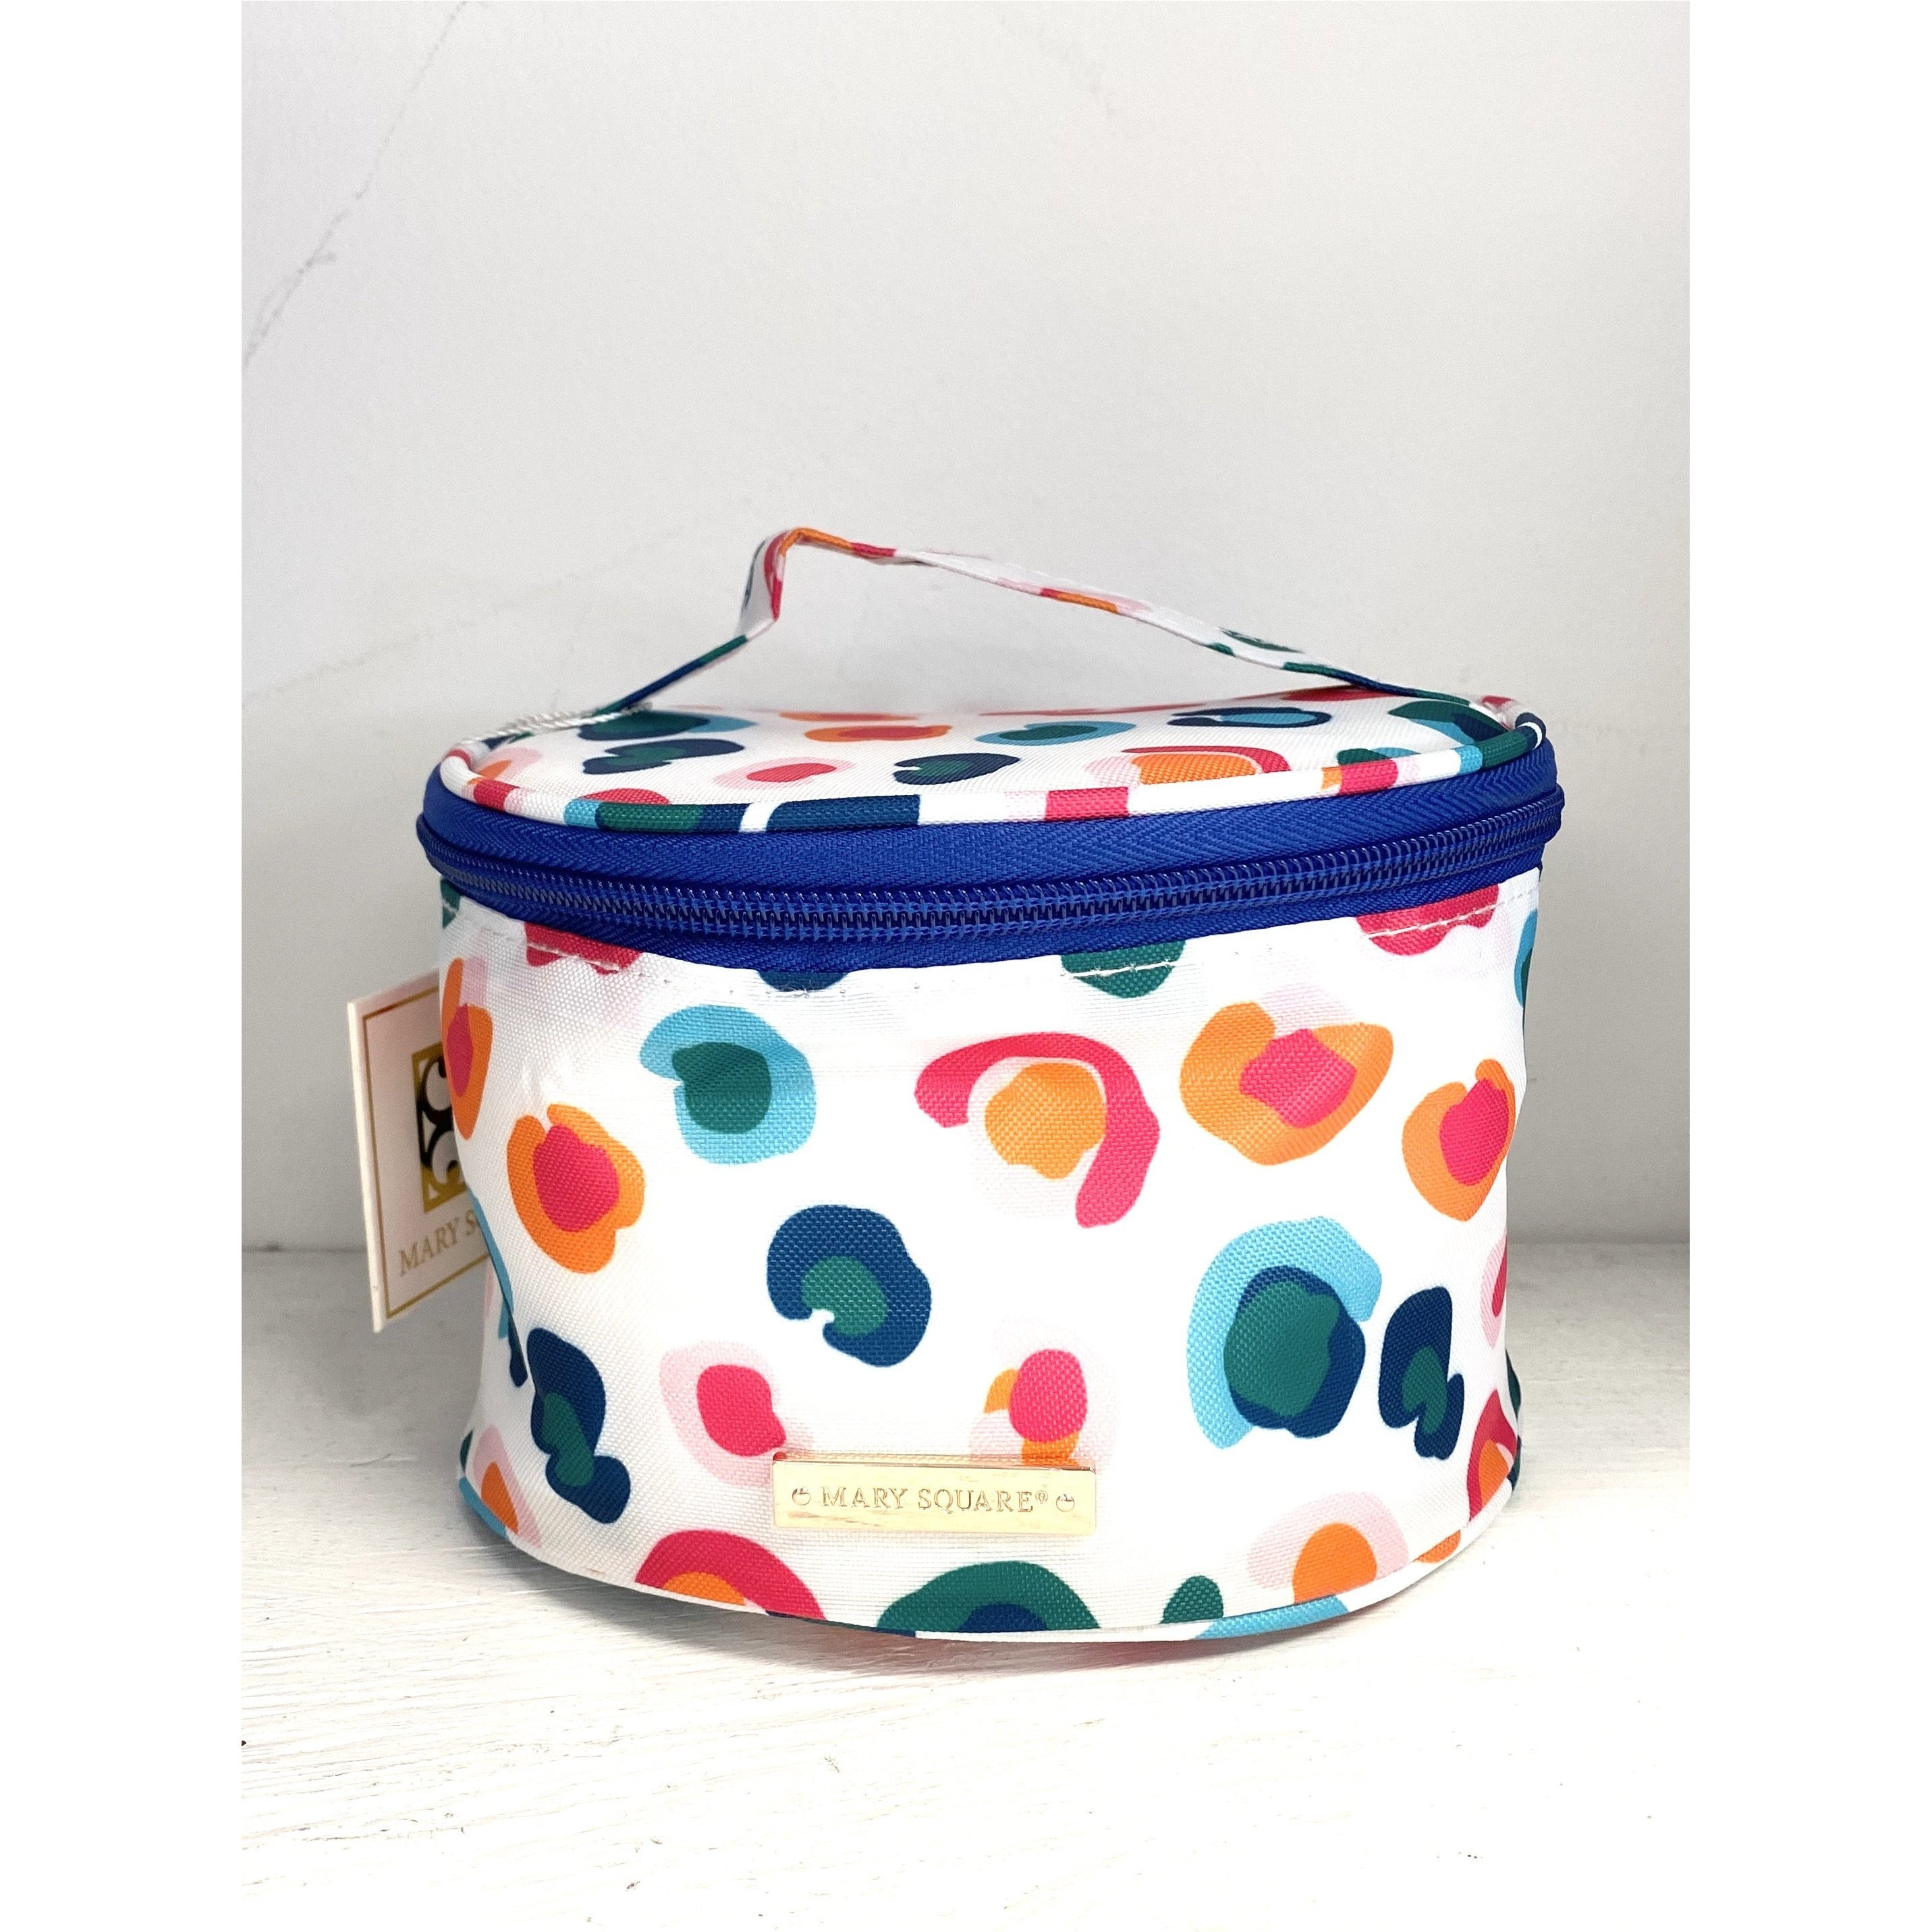 Mary Square Round Jewelry Case in Catwalk Confetti